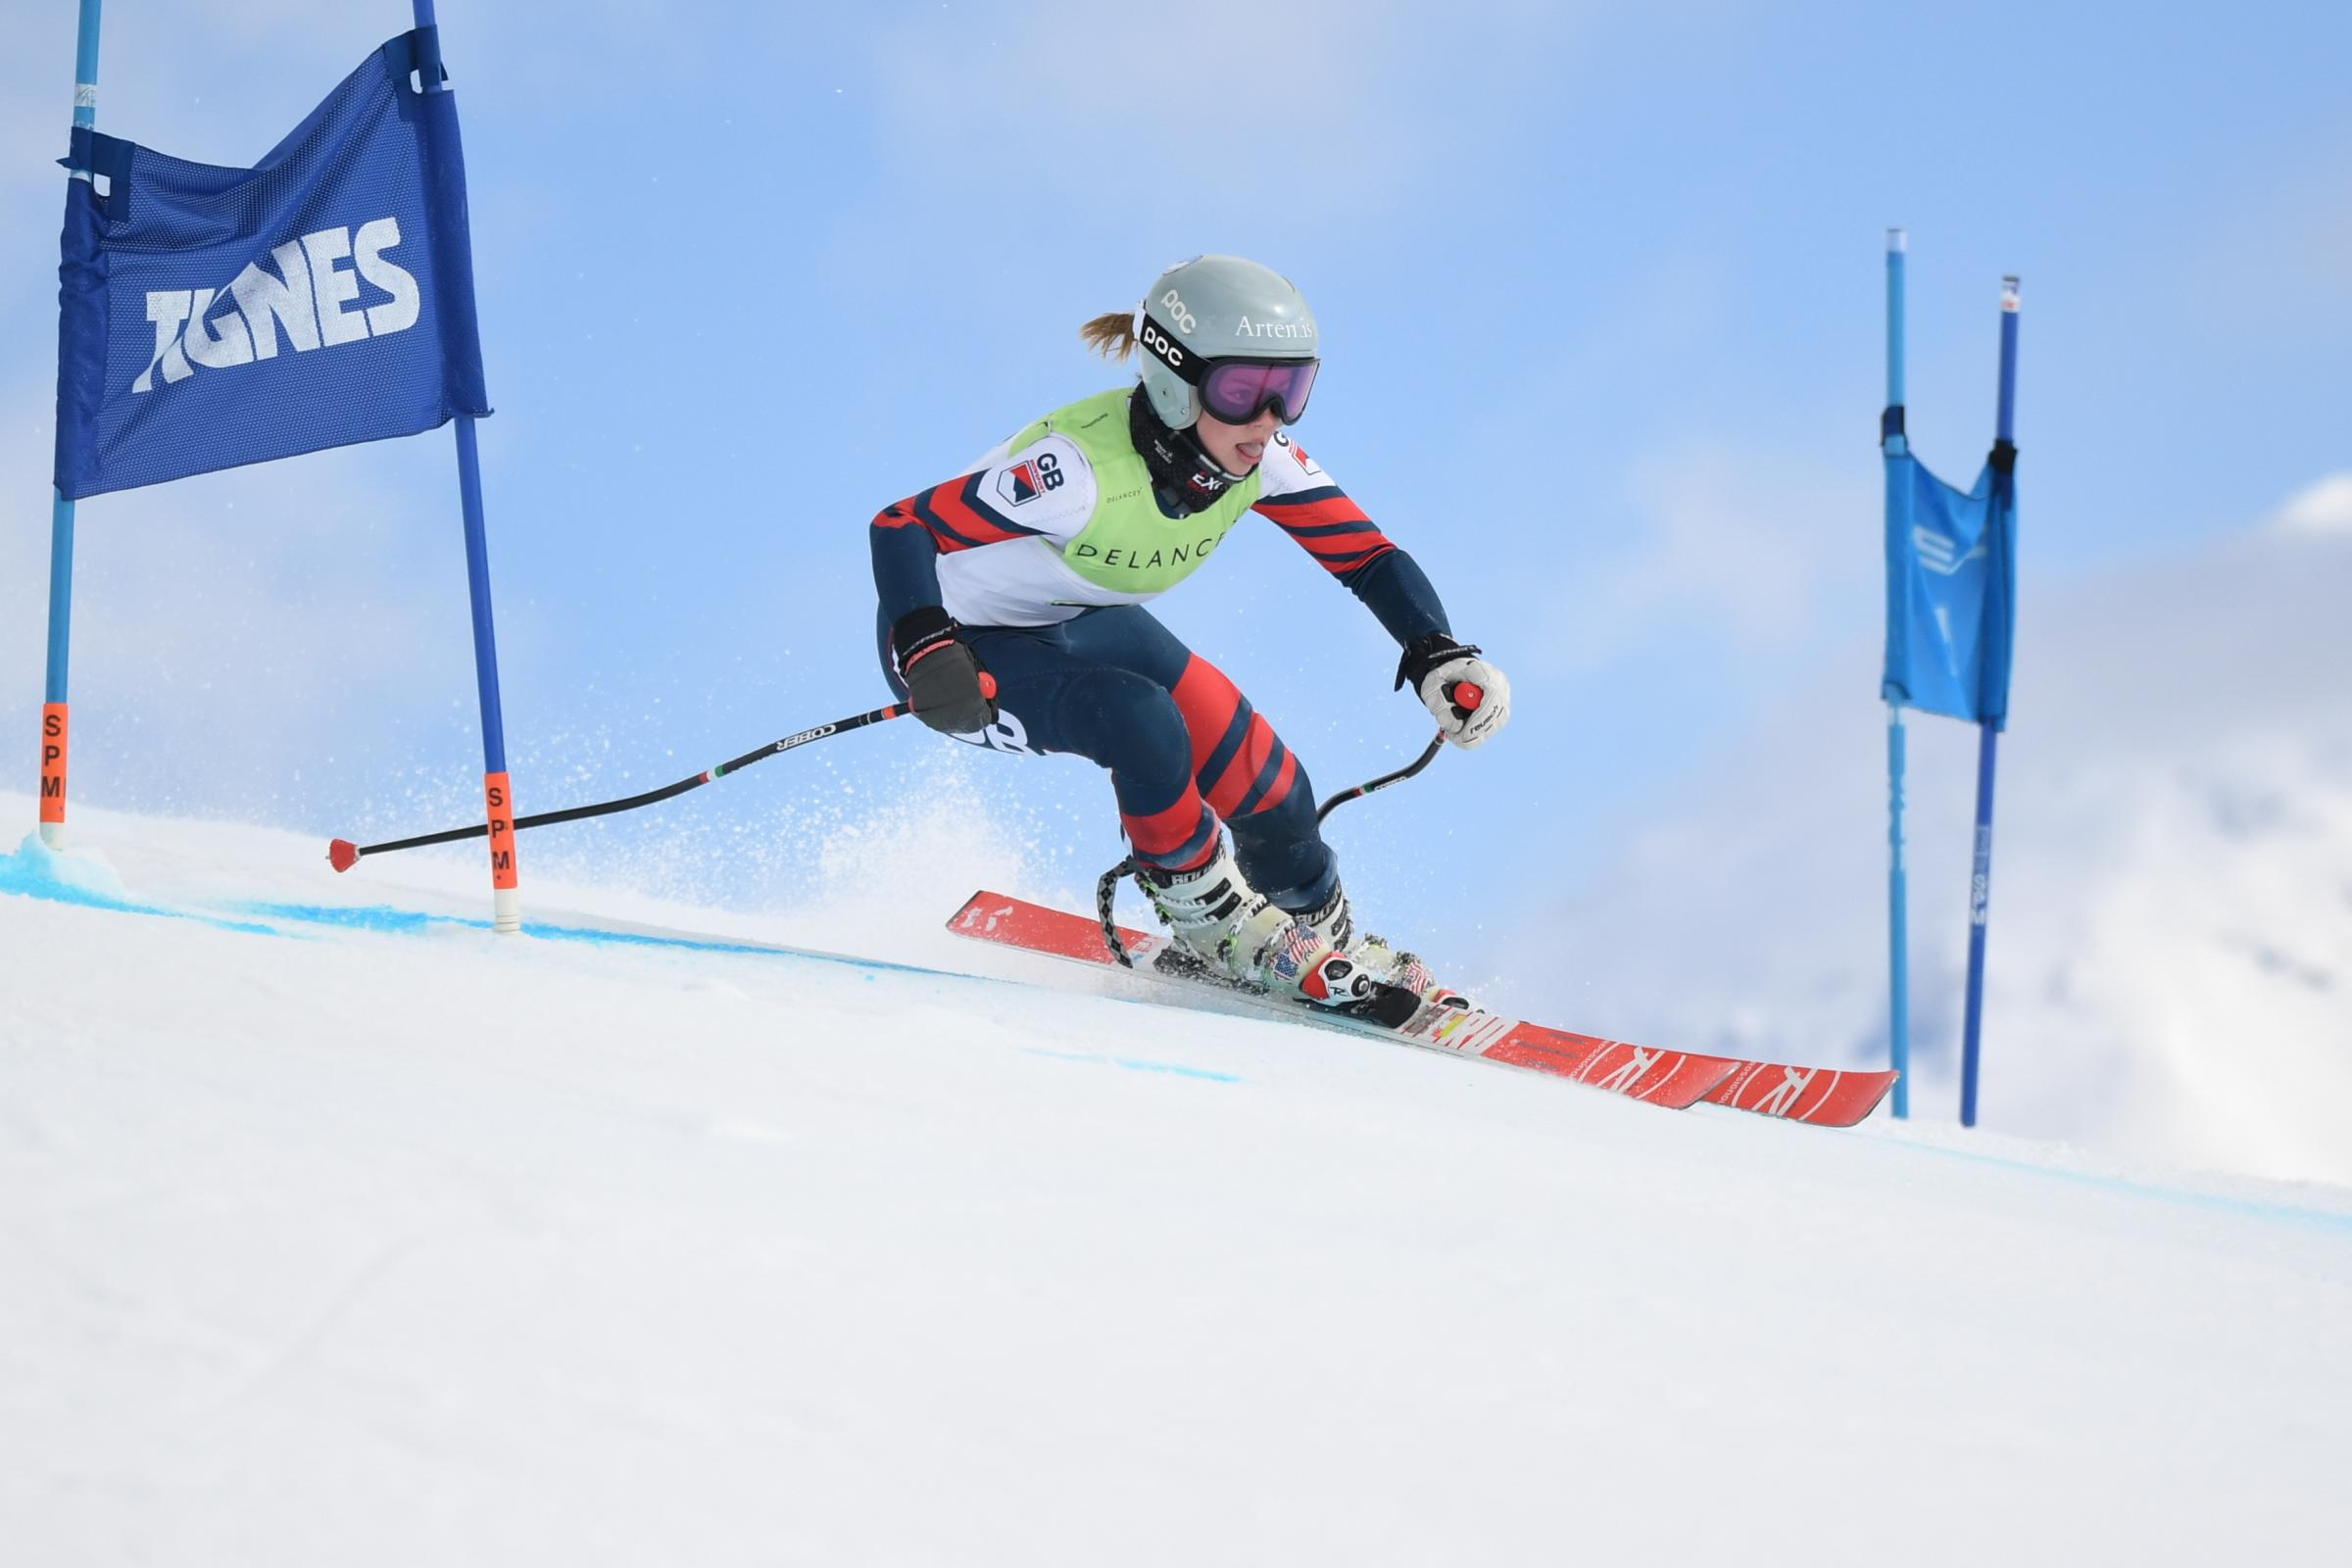 Bournemouth talent Sophie Stocker in action at the 2019 GB Alpine Championship